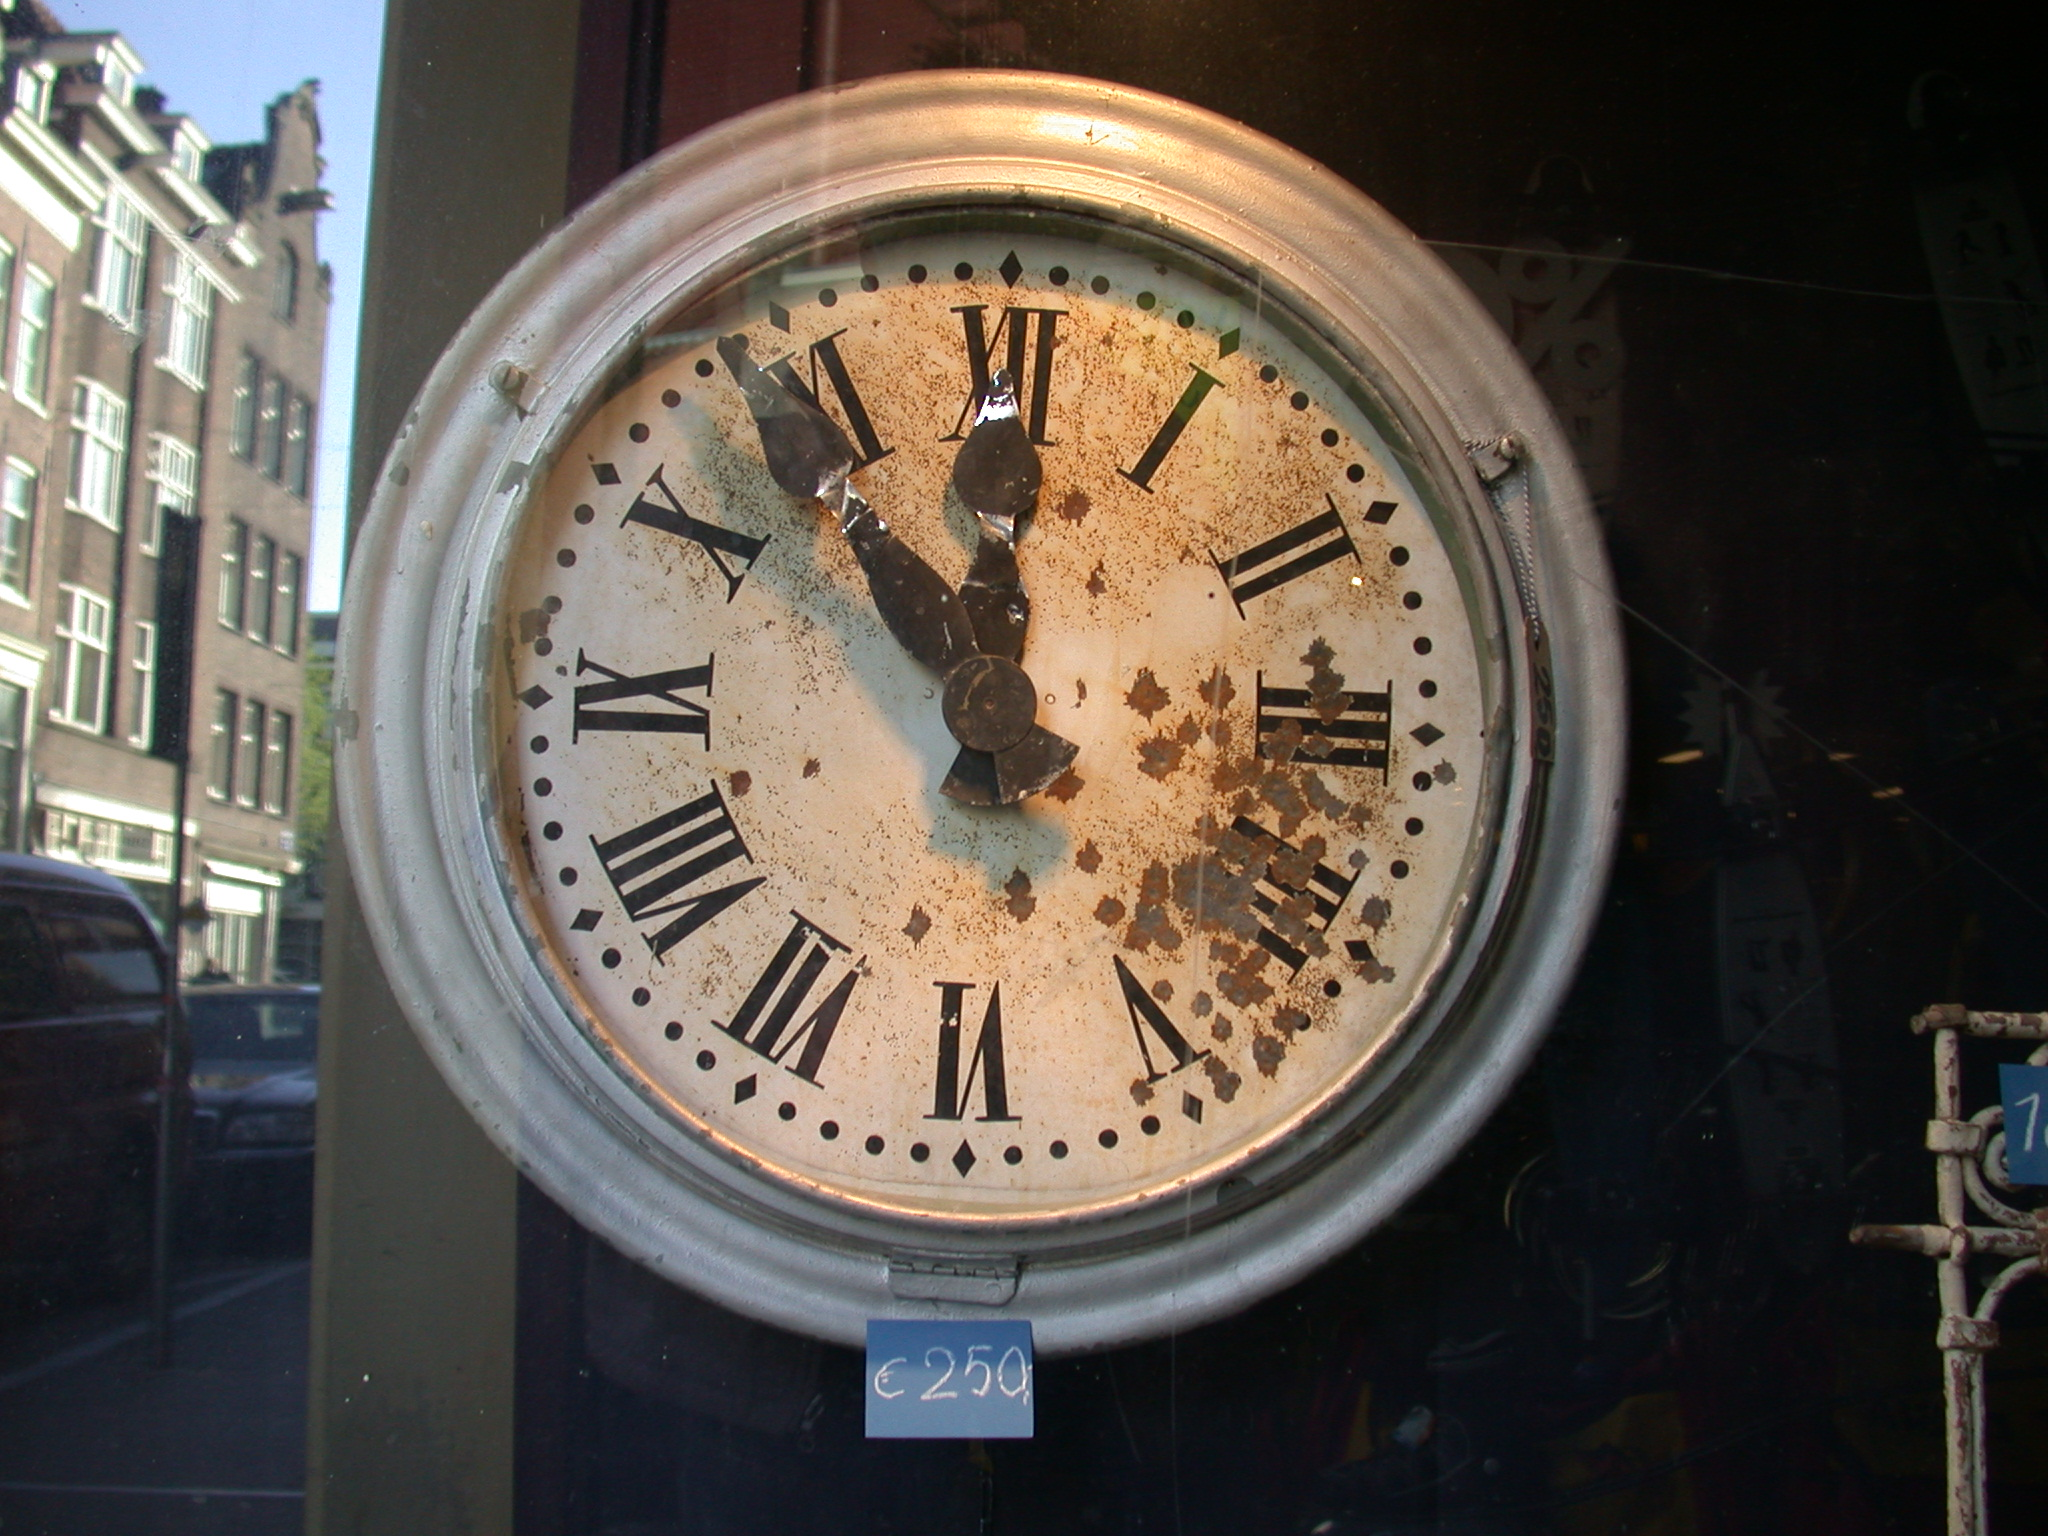 clock antique old roman numerals shop 250 euro euros worn